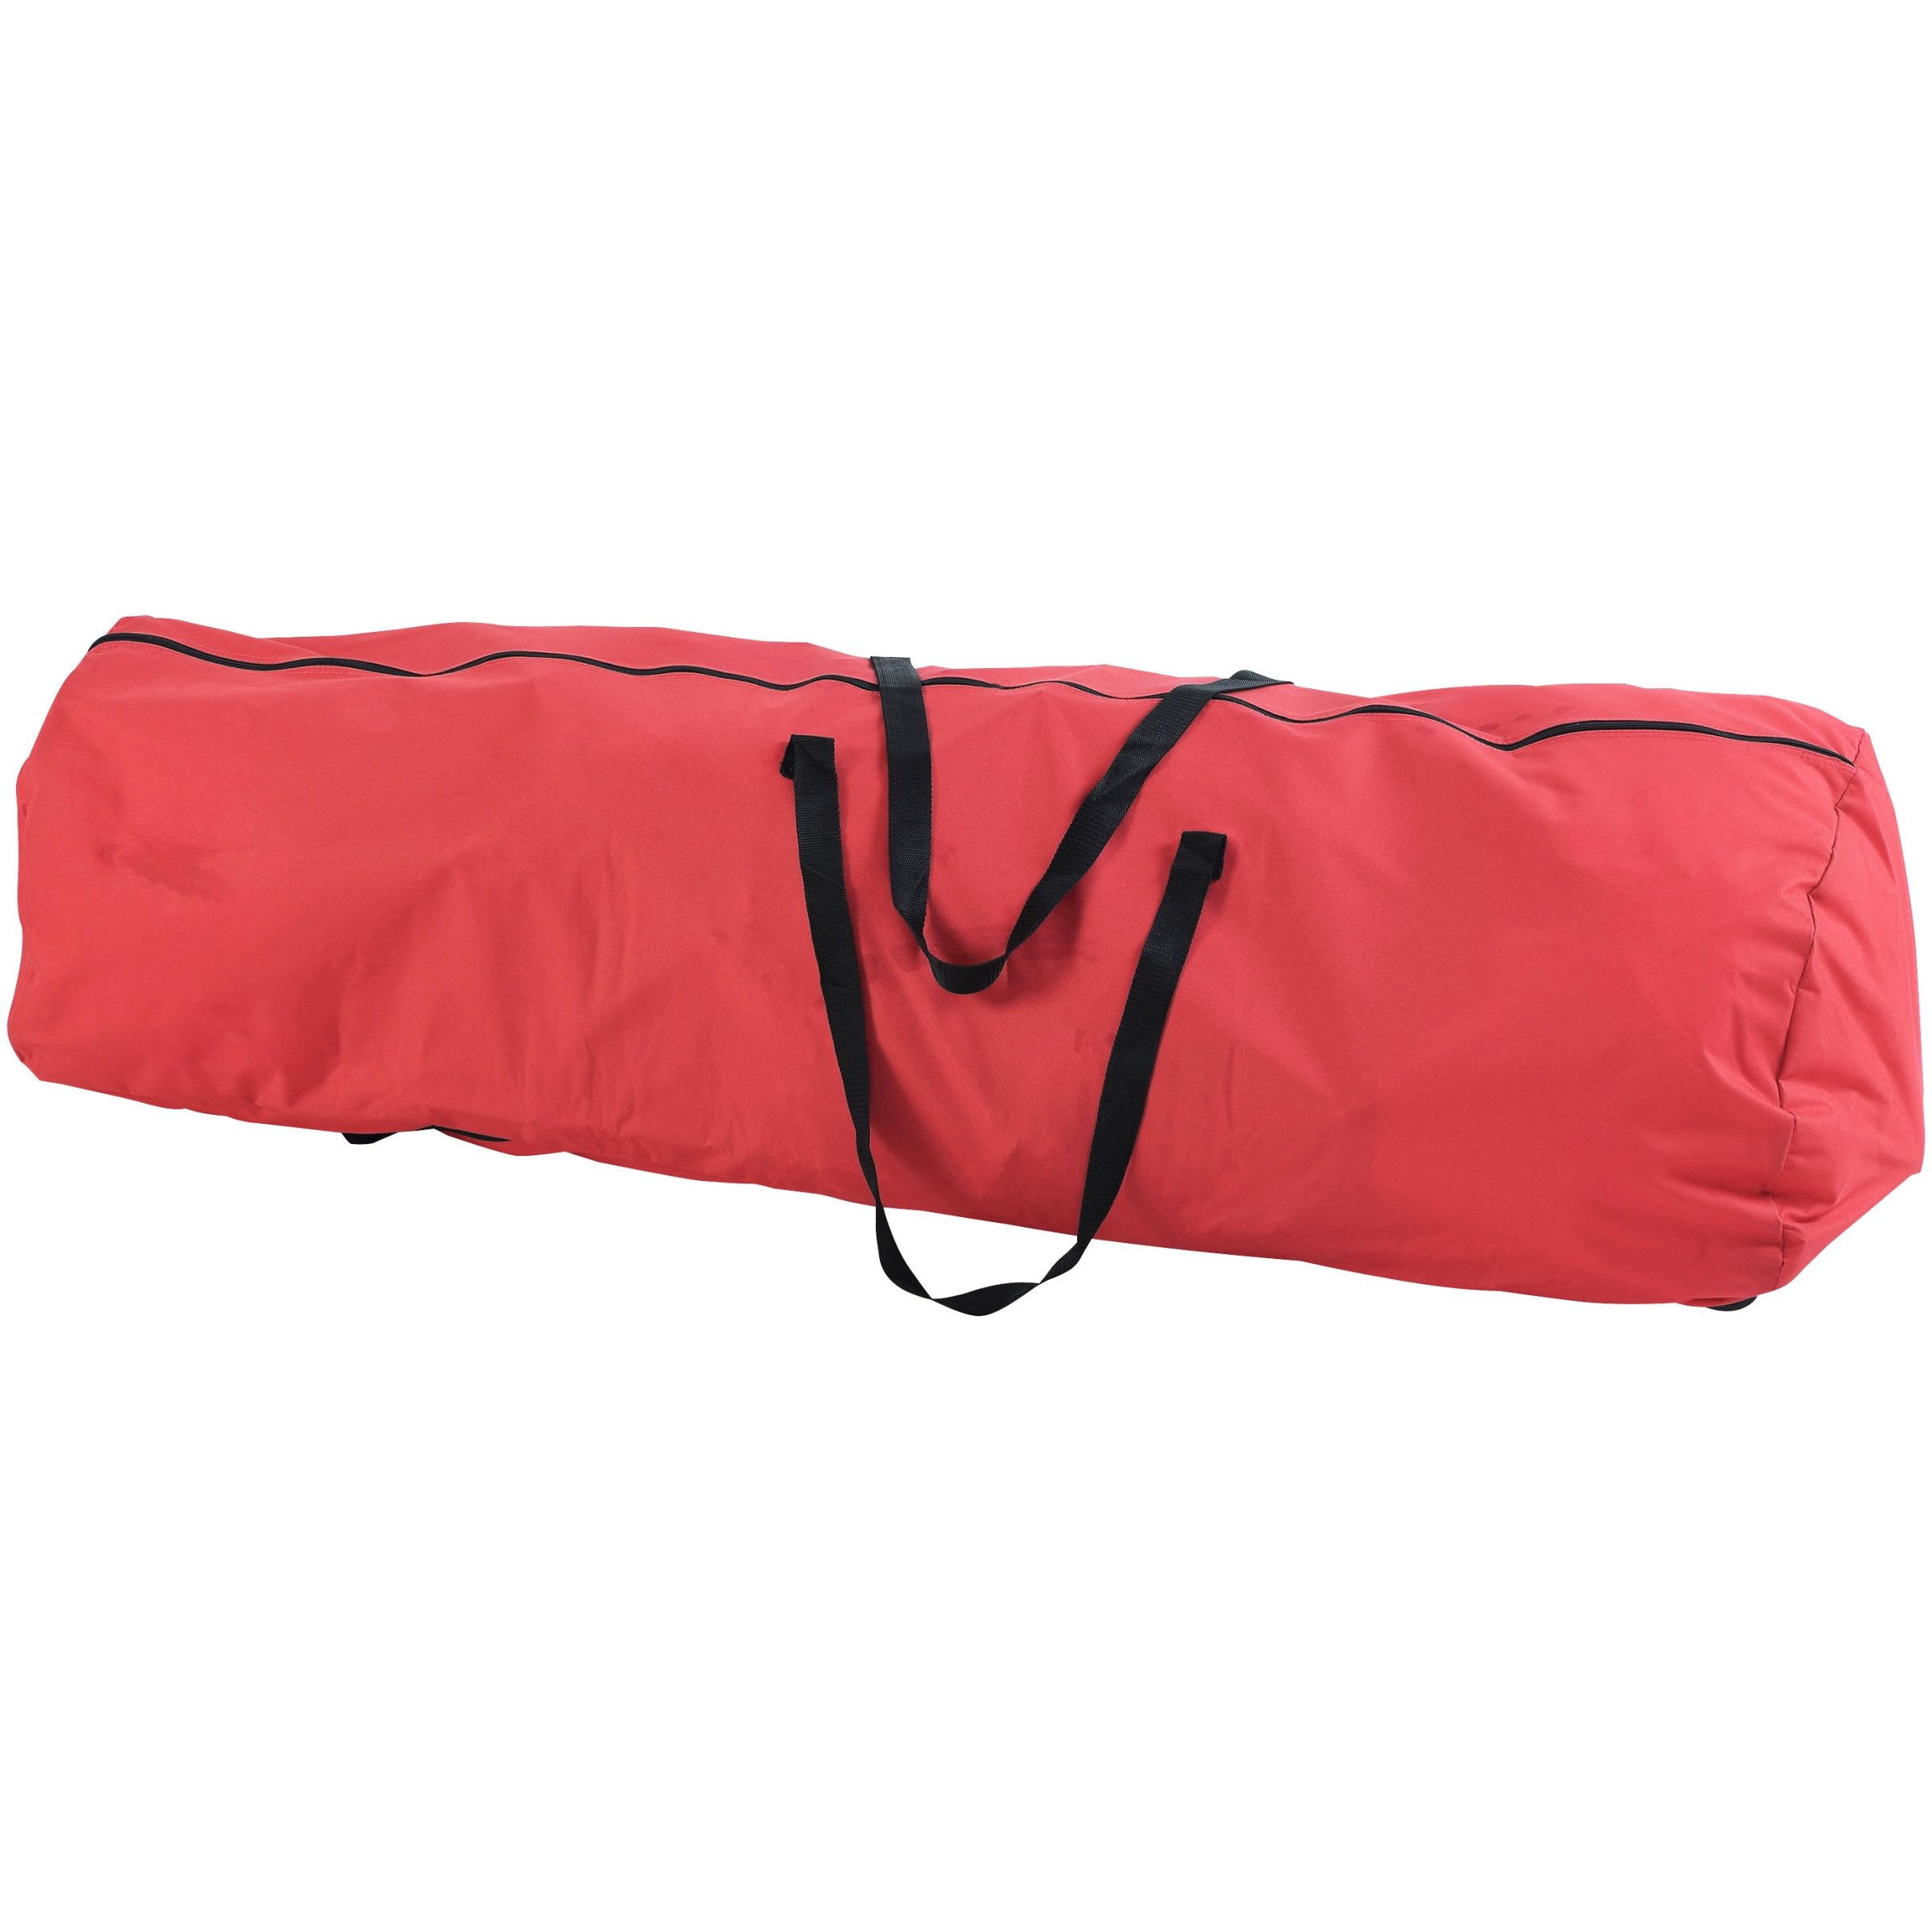 Holiday Time 7.5 Ft. Artificial Tree Rolling Storage Bag, Red With Black  Handles